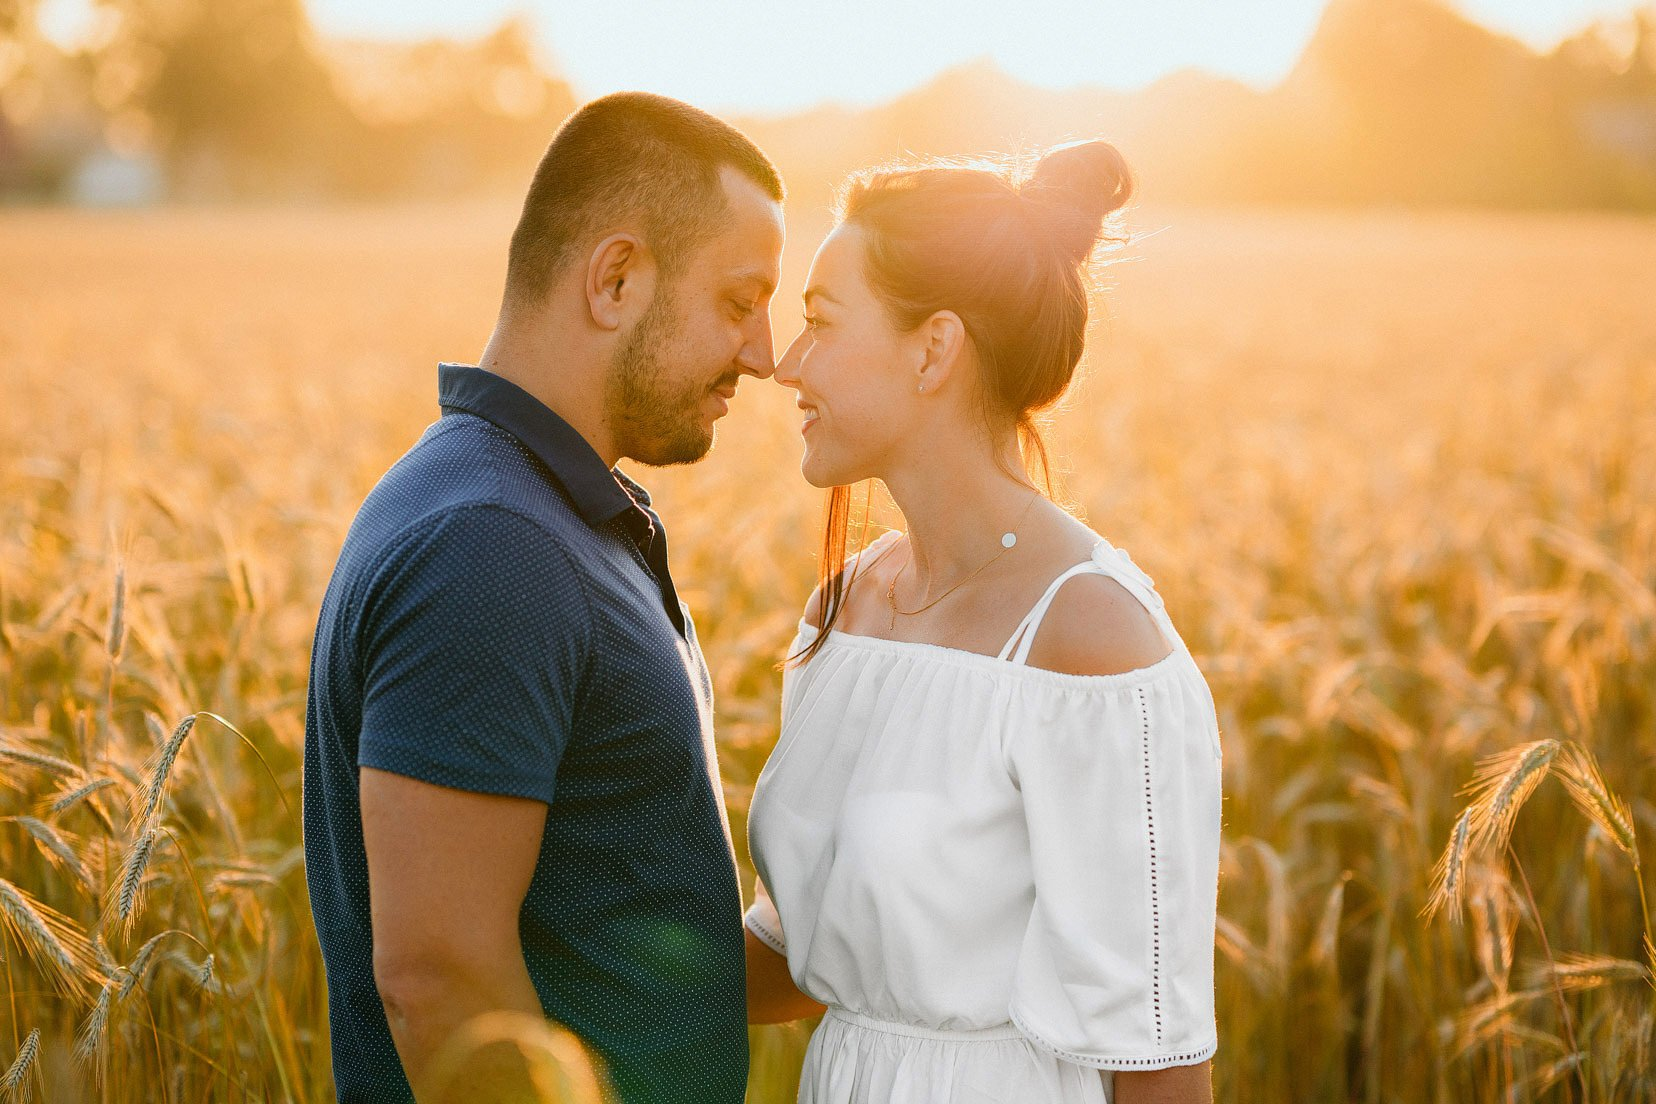 destination engagement photography 46 - Destination Engagement Photography - Anna + Adam